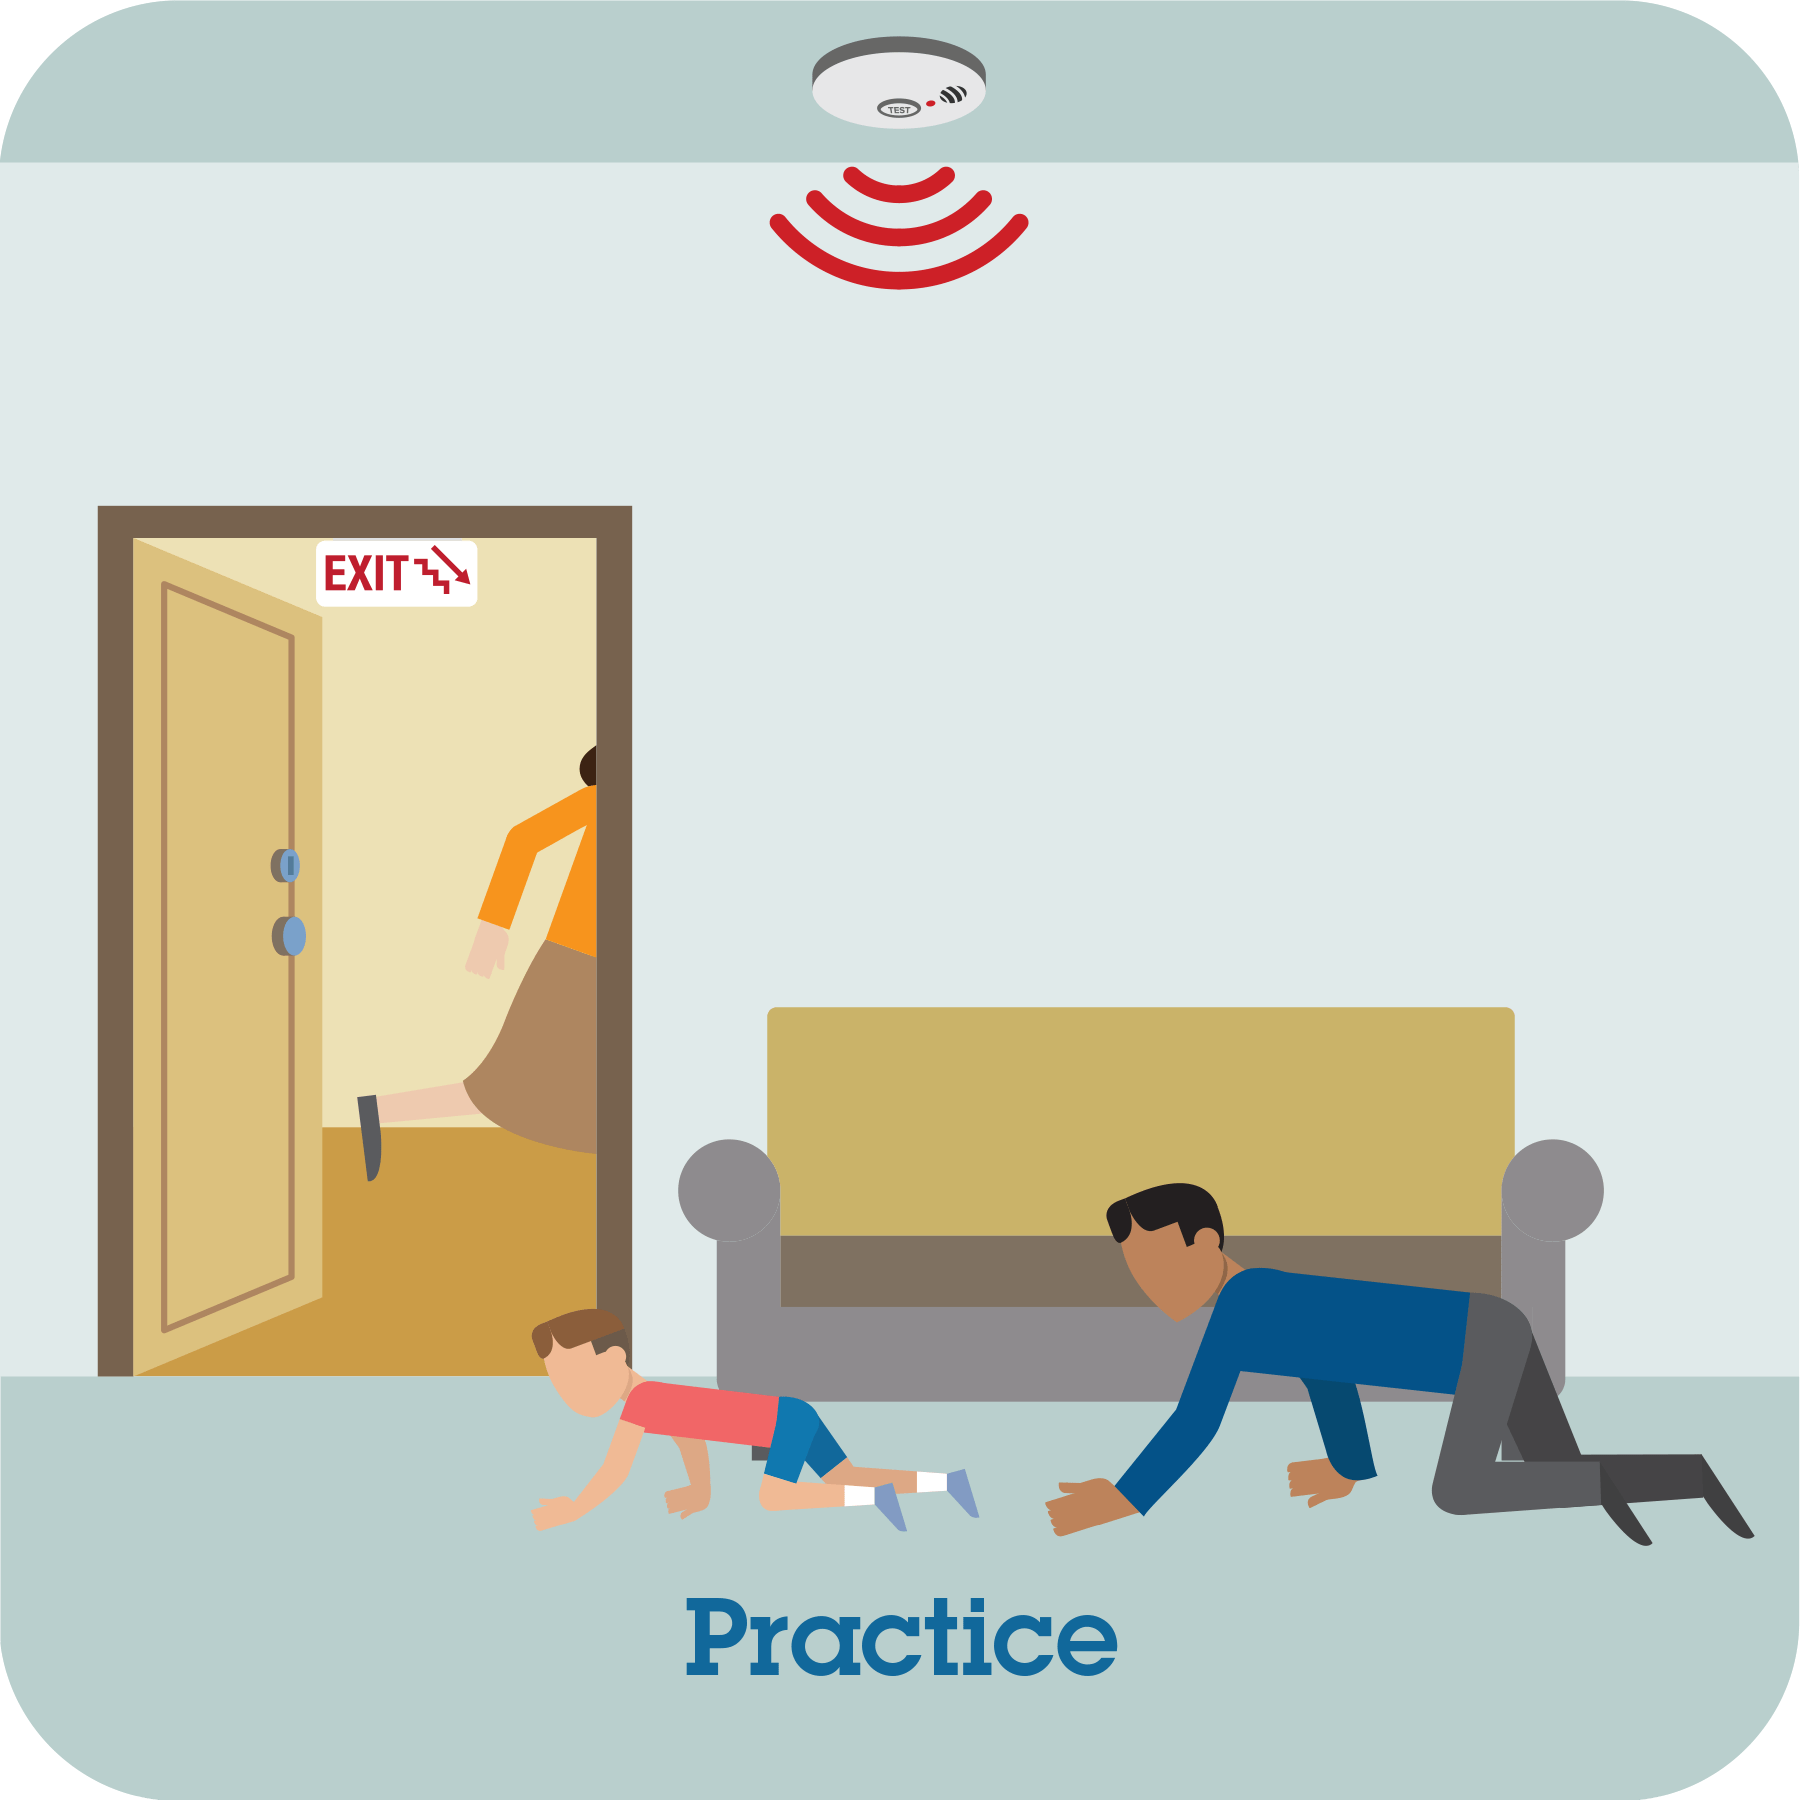 Alarm sounds and boy and man crawling on the floor with practice prompt.